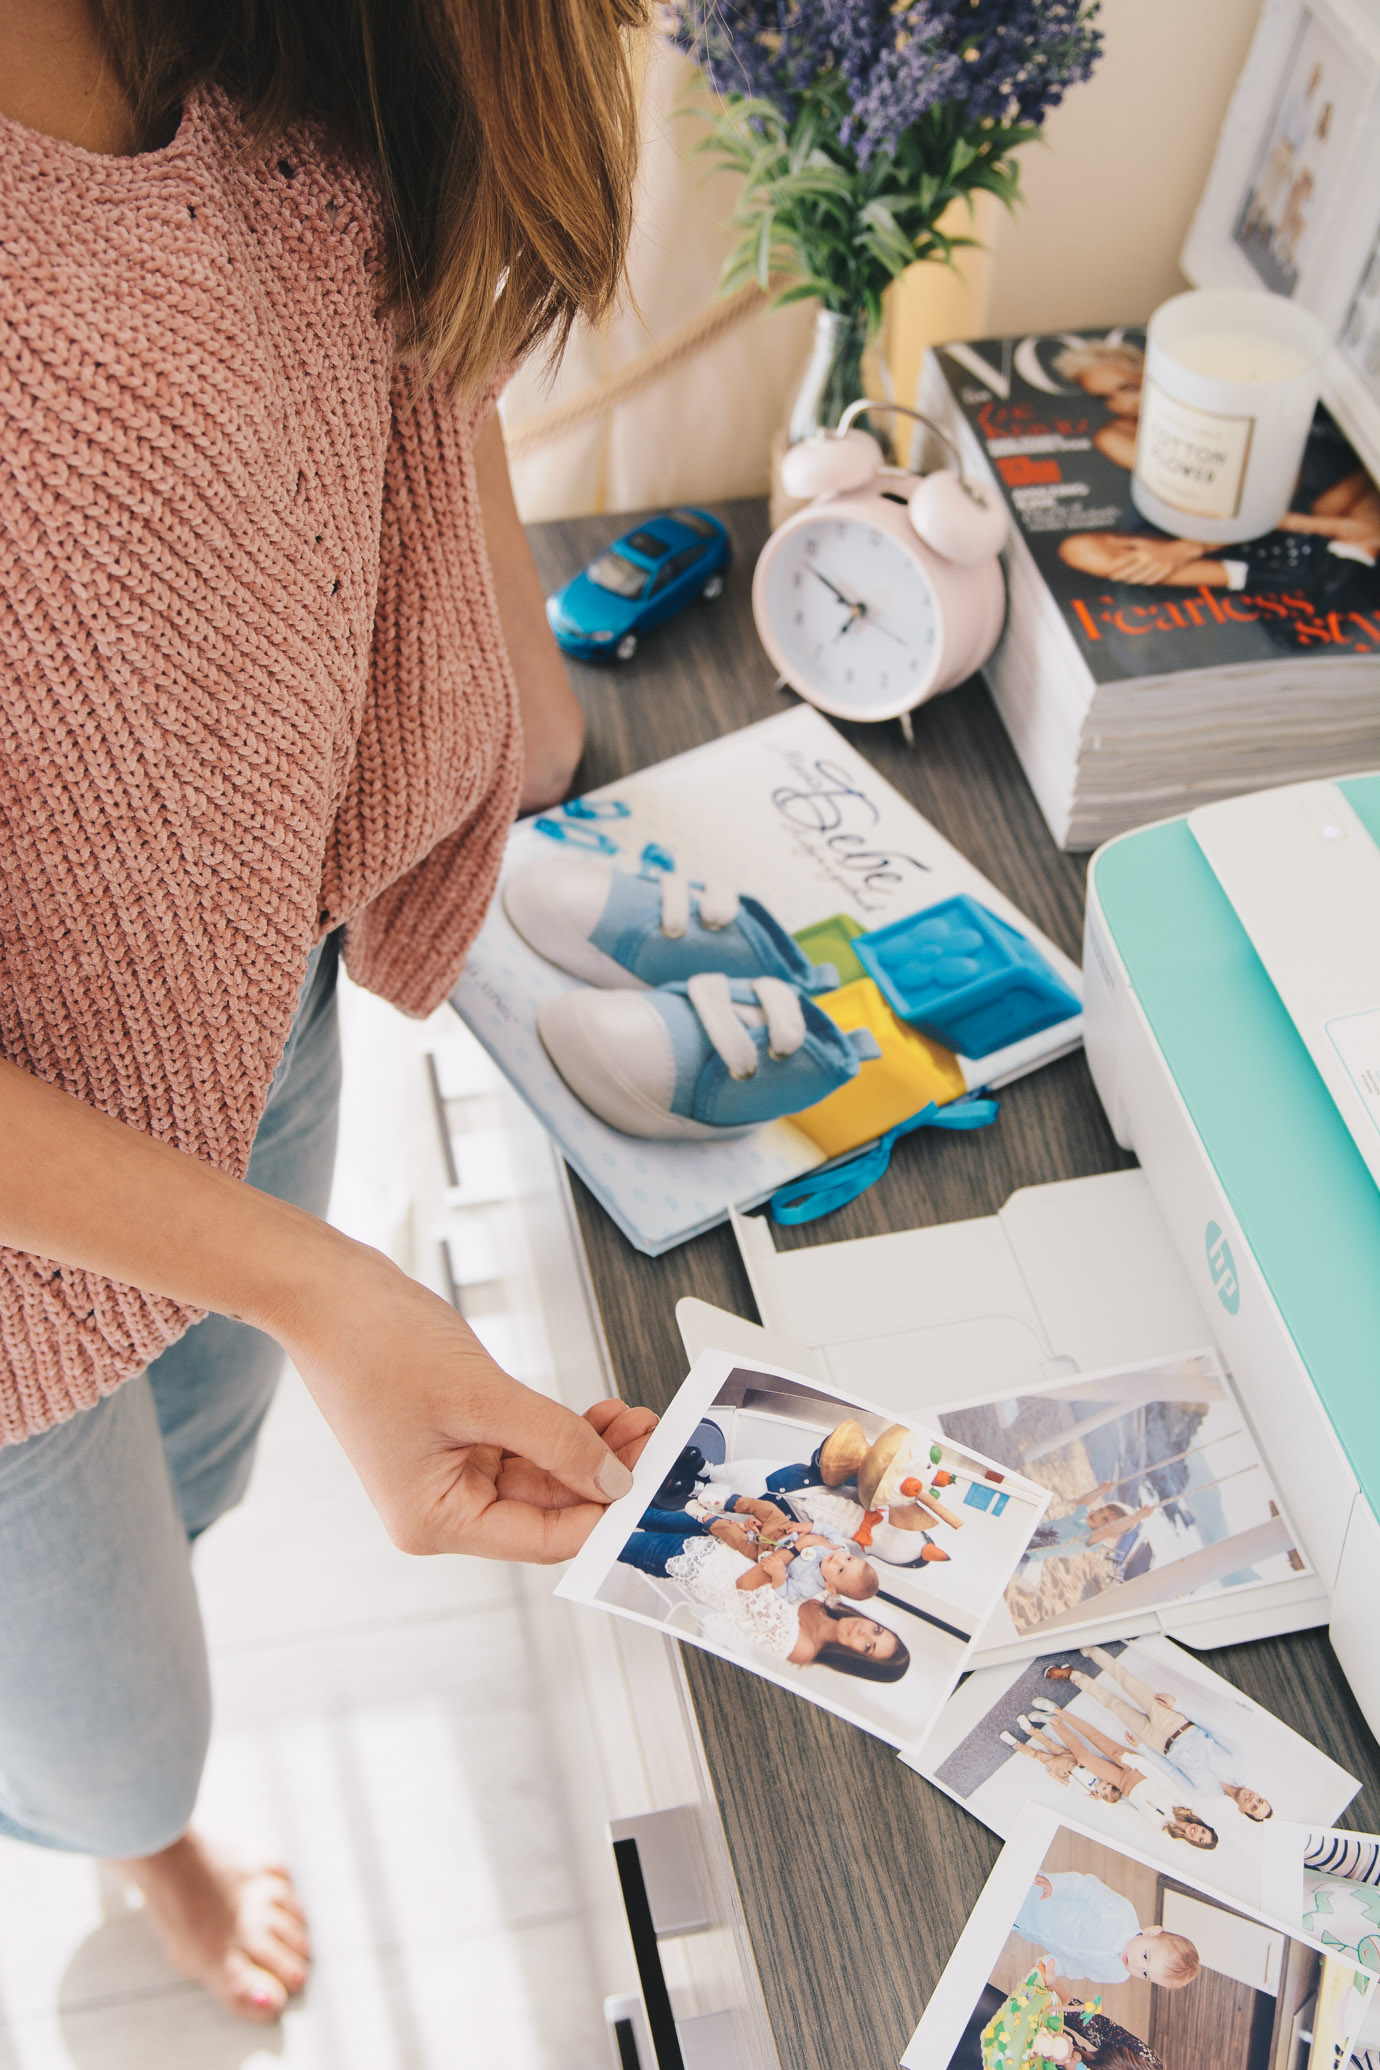 Printing photos with HP